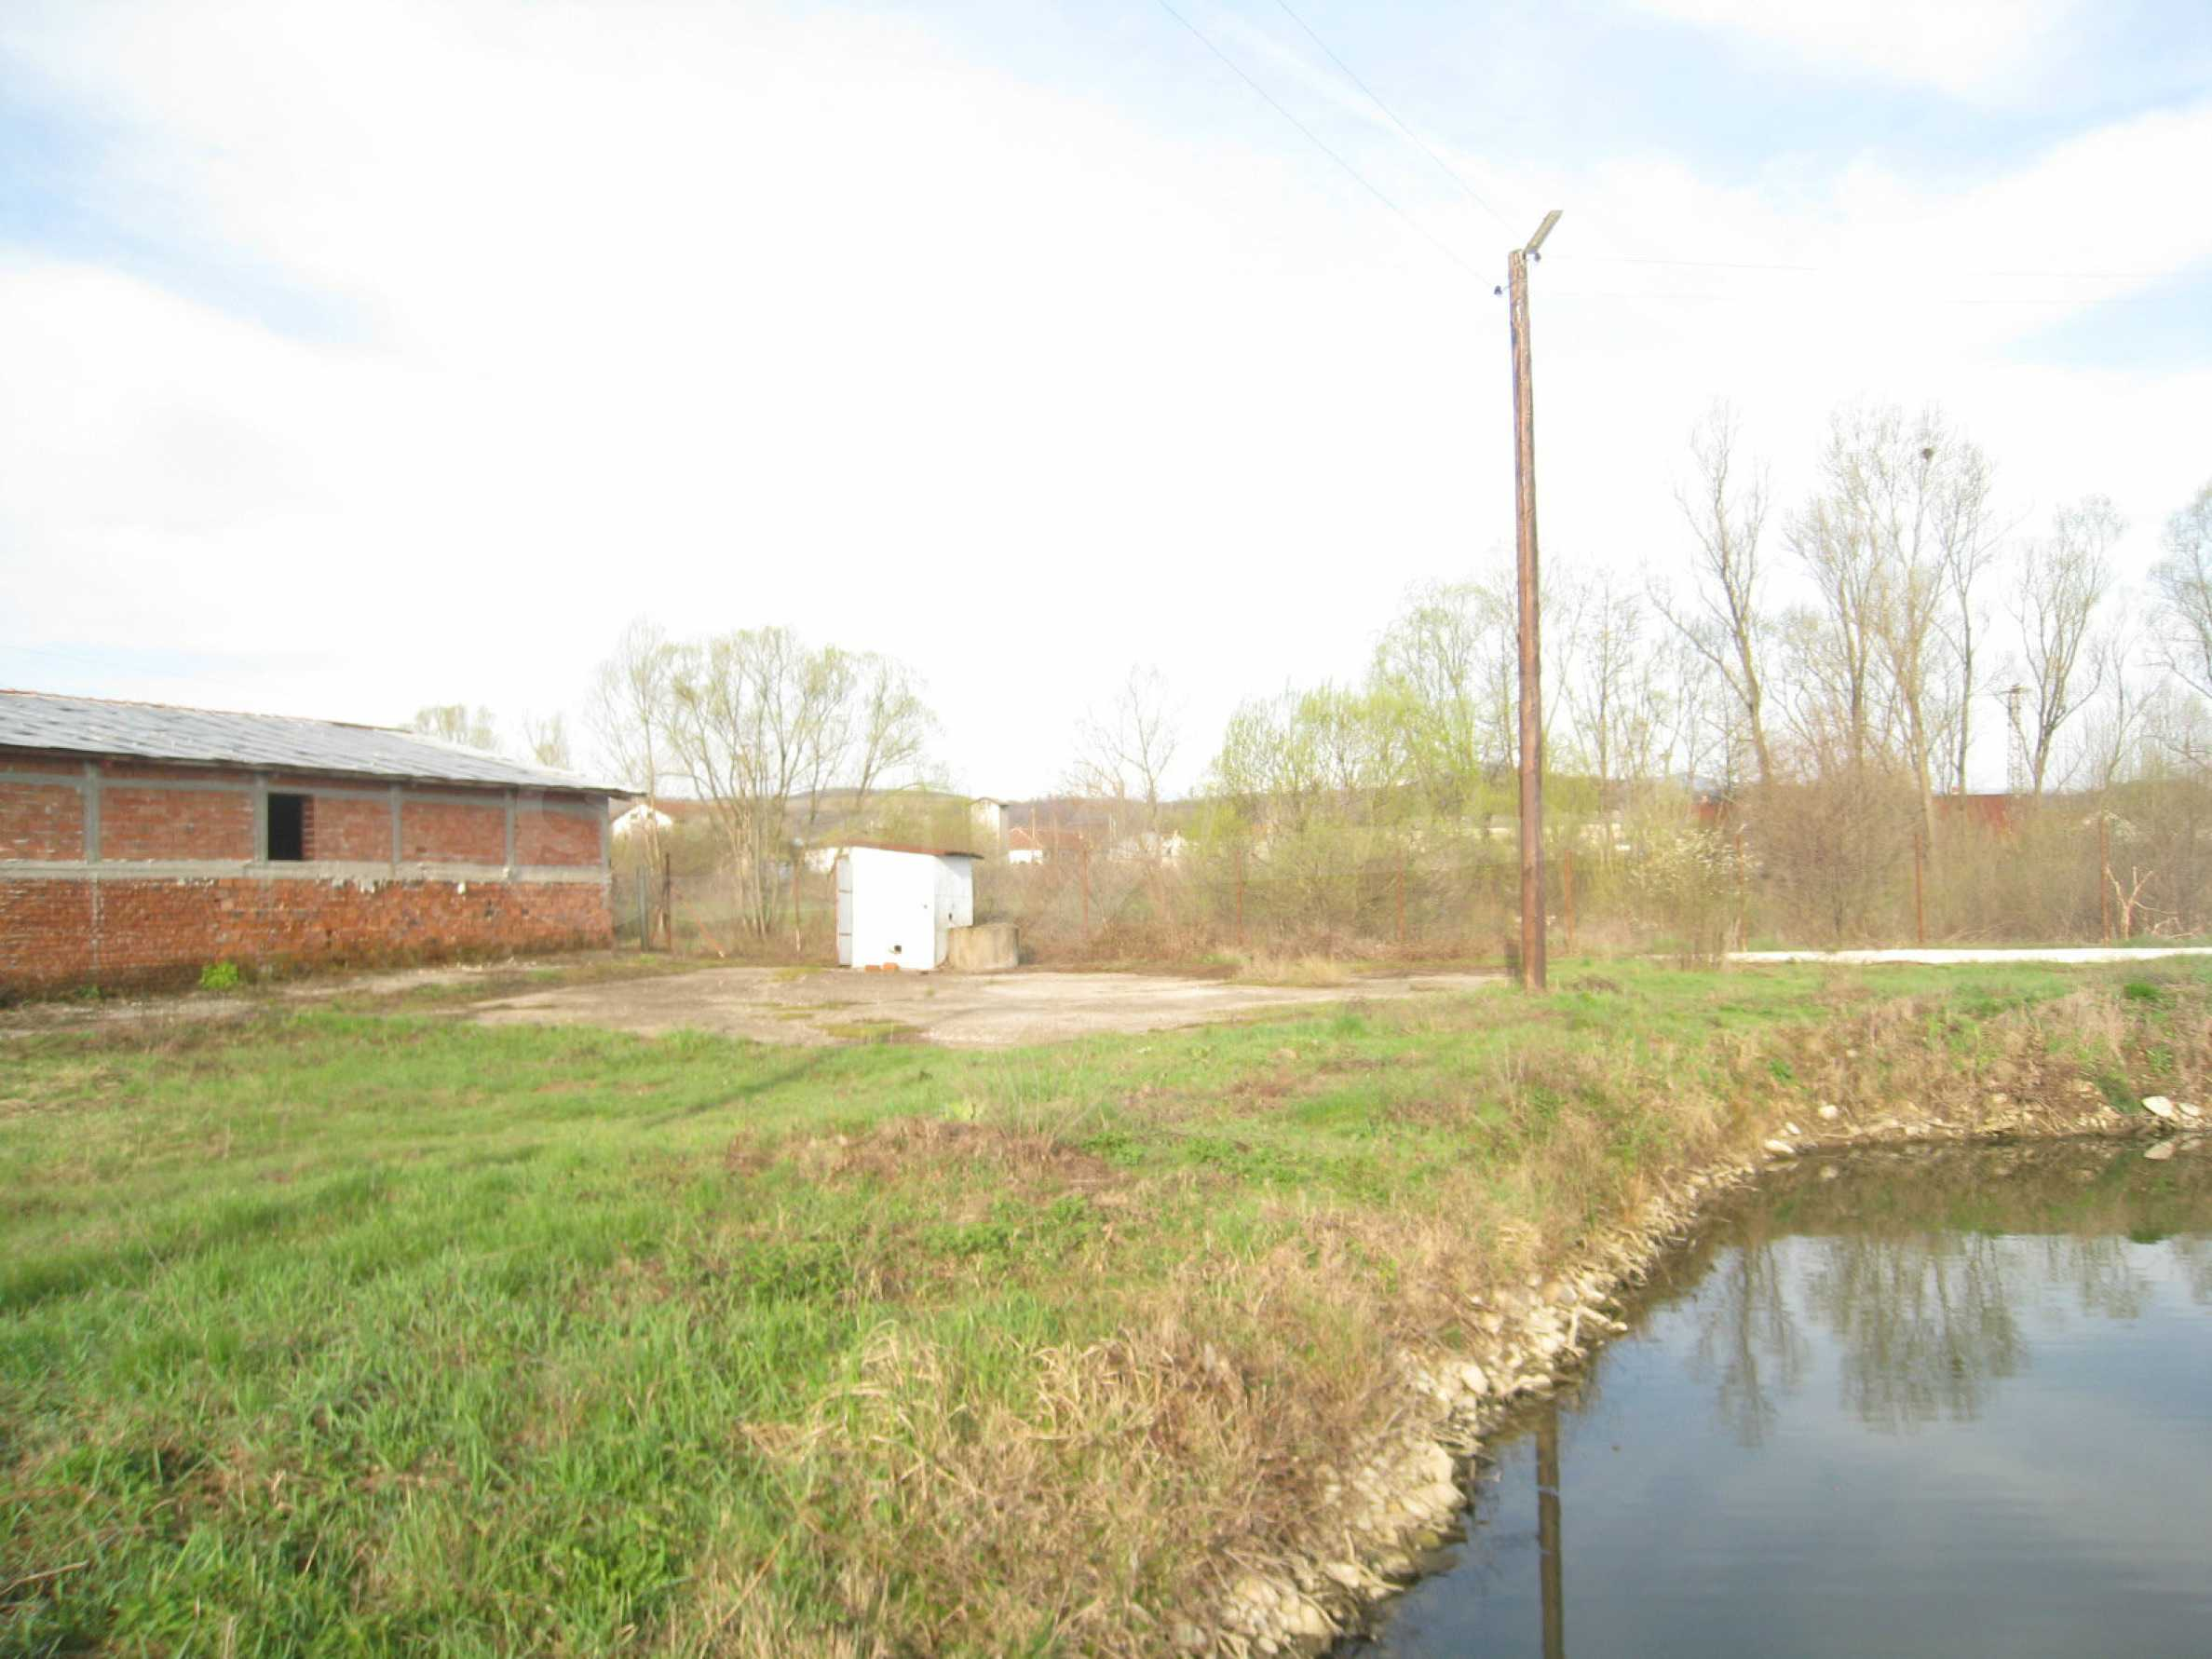 Fishpond, warehouses, residential areas and asphalt ground near Montana 25